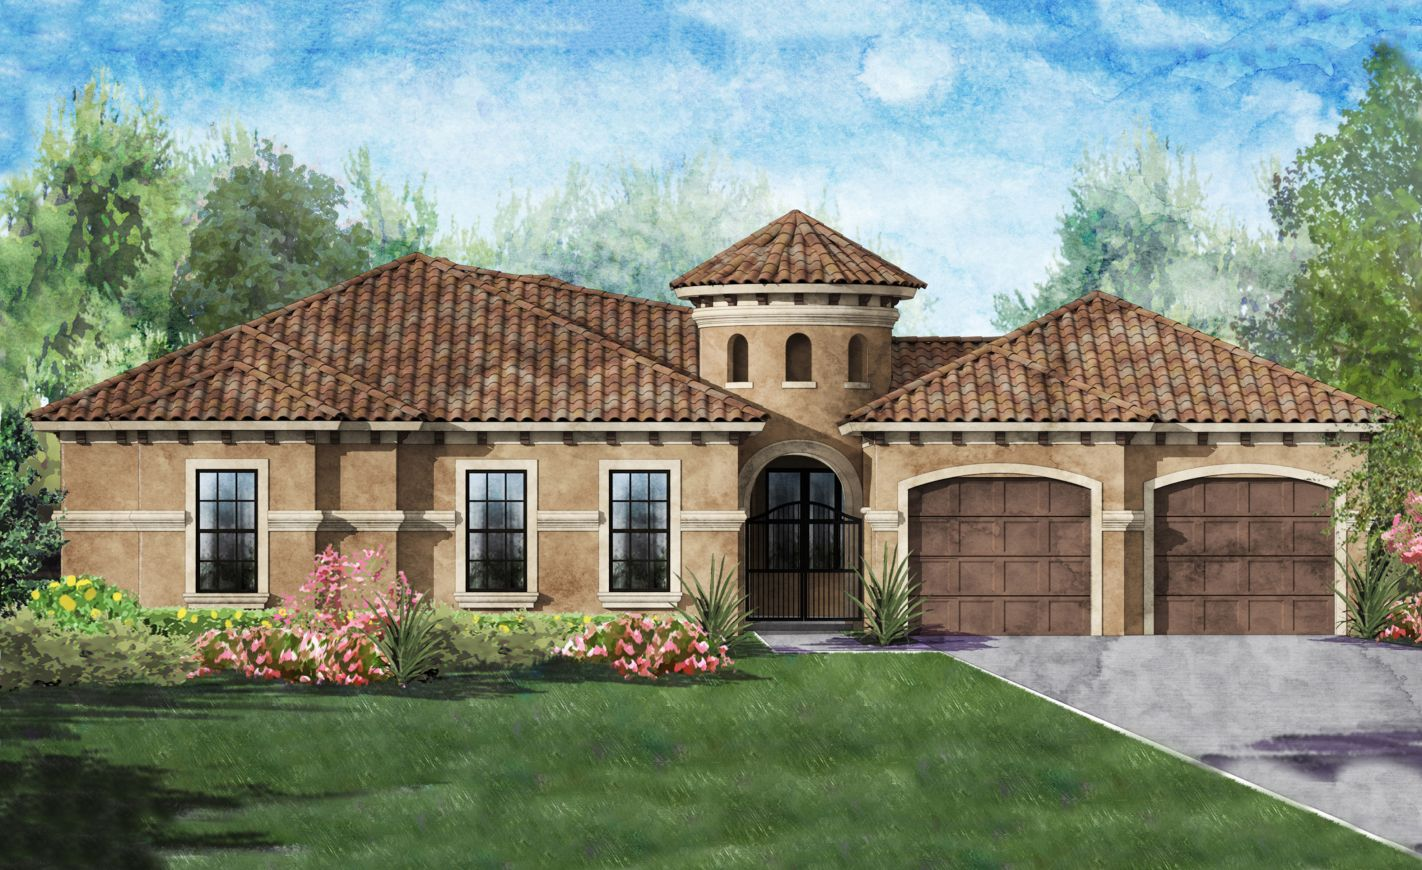 Nocatee Homes for Sale - The Madeline II at Nocatee